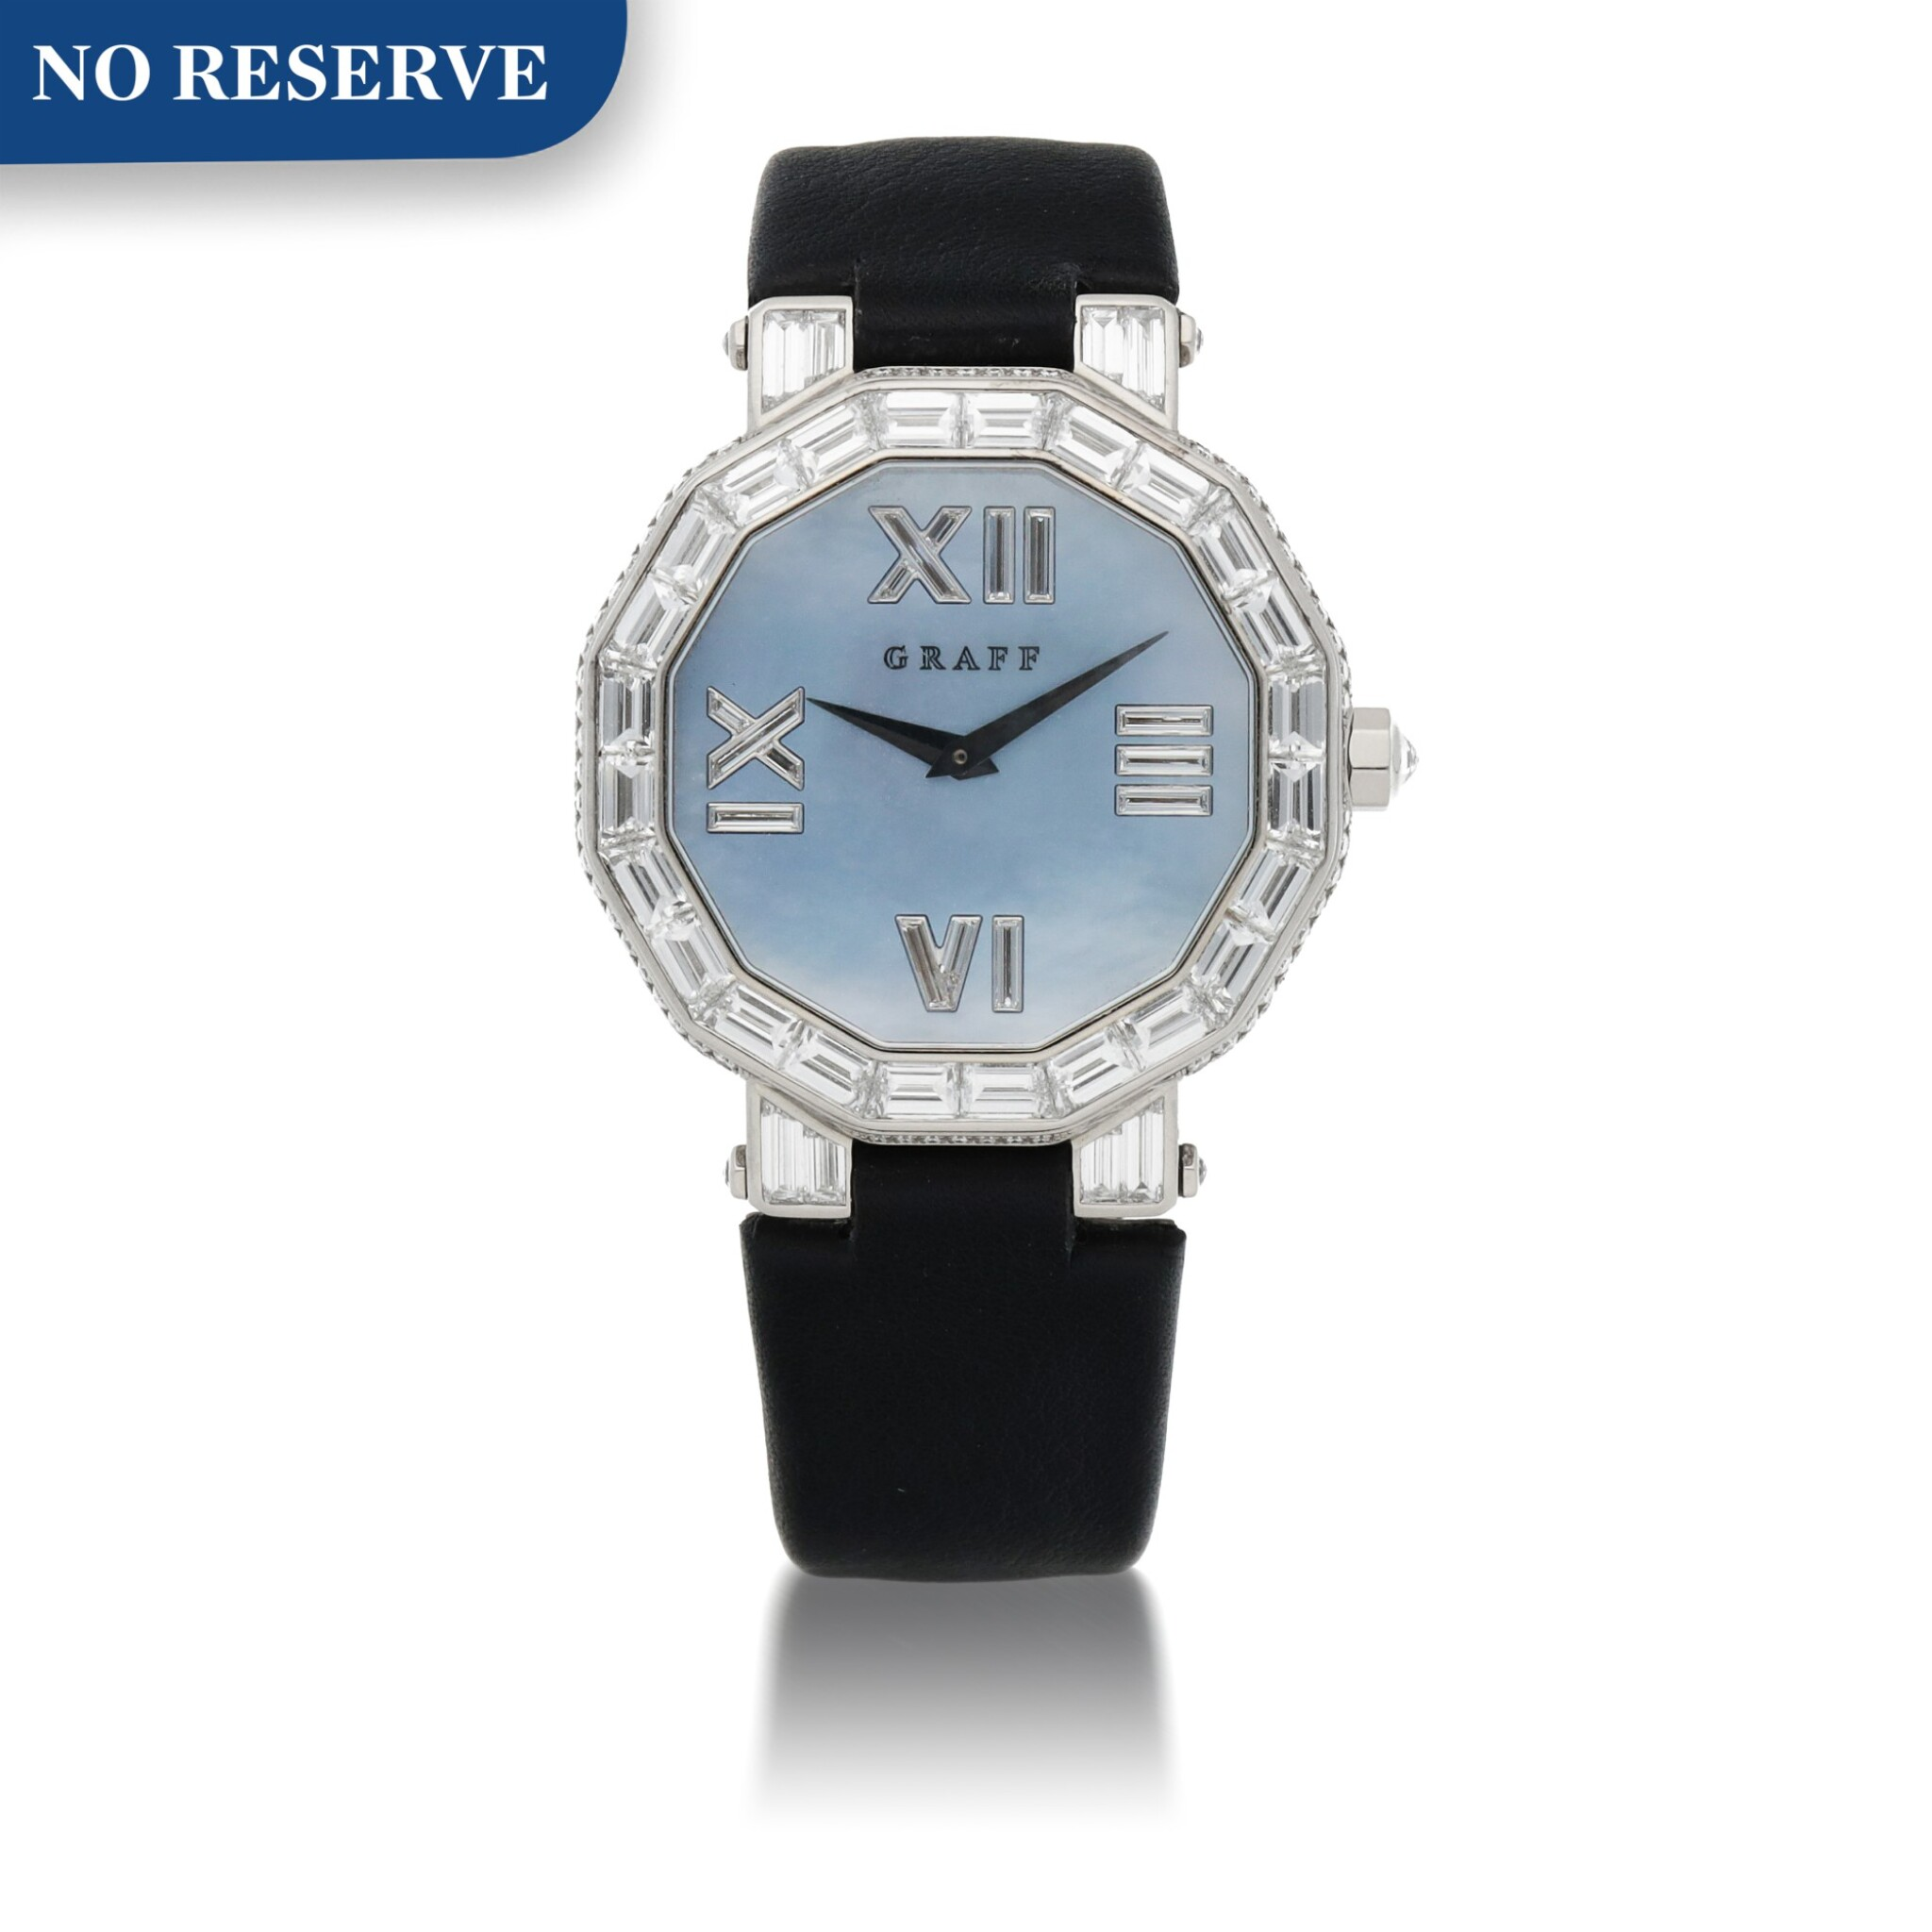 View full screen - View 1 of Lot 419. REF GXXVI WHITE GOLD AND DIAMOND-SET WRISTWATCH WITH MOTHER-OF-PEARL DIAL CIRCA 2010.